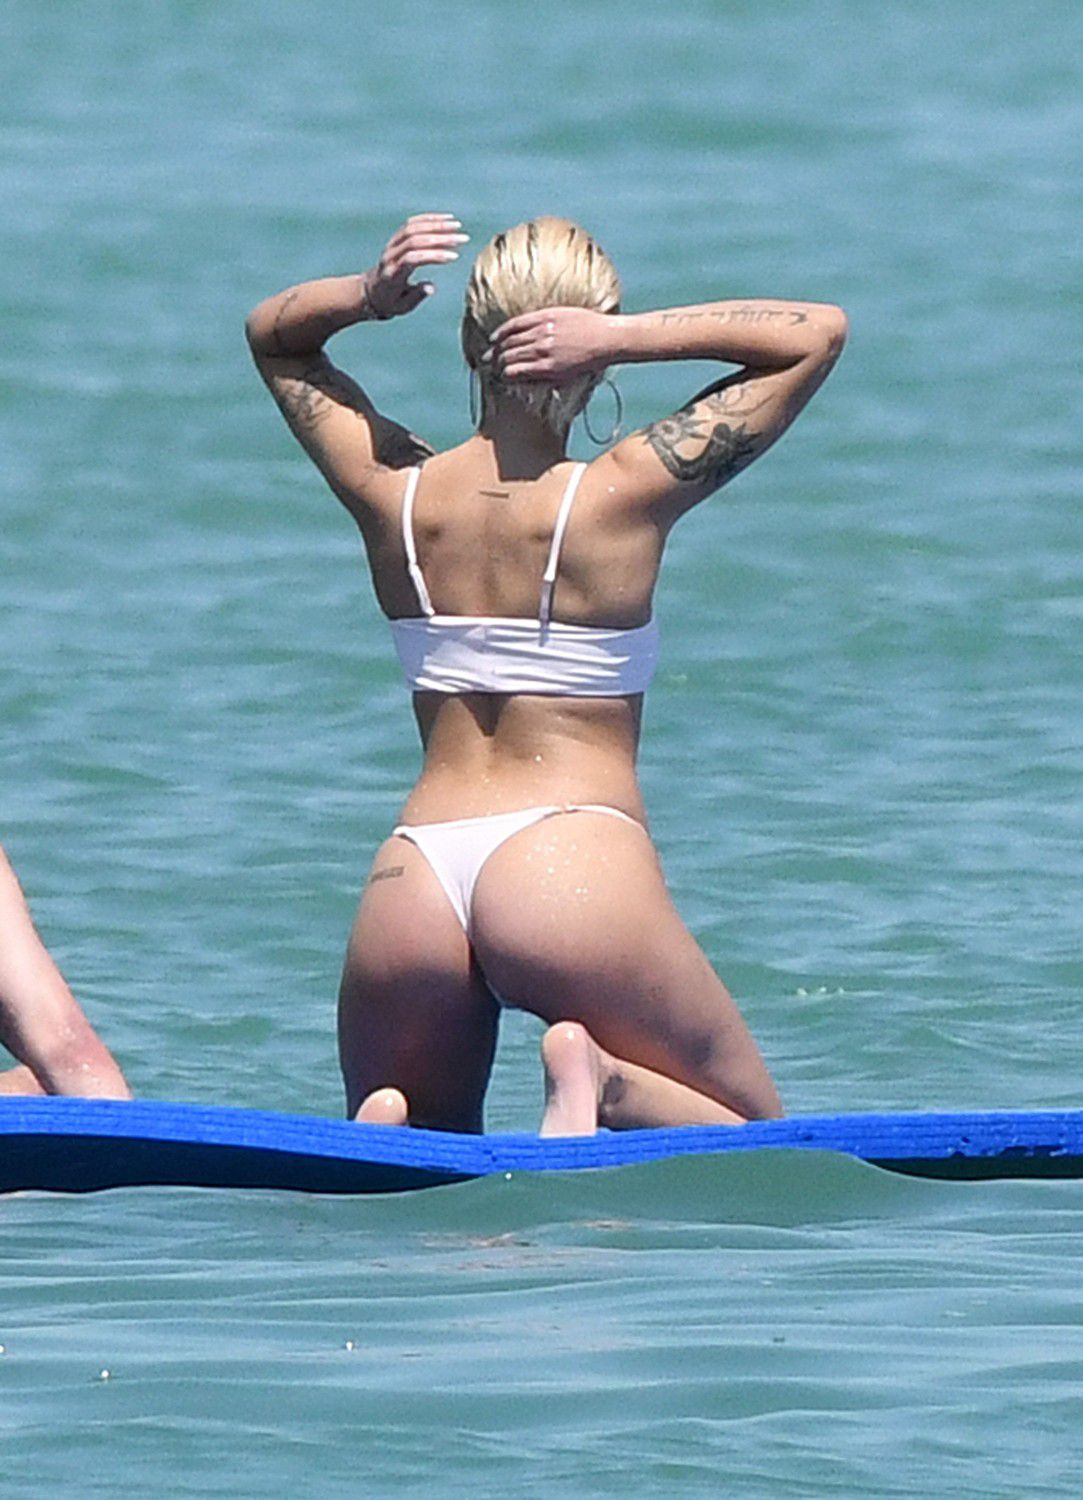 halsey-wearing-a-white-thong-bikini-on-a-yacht-in-miami-7406